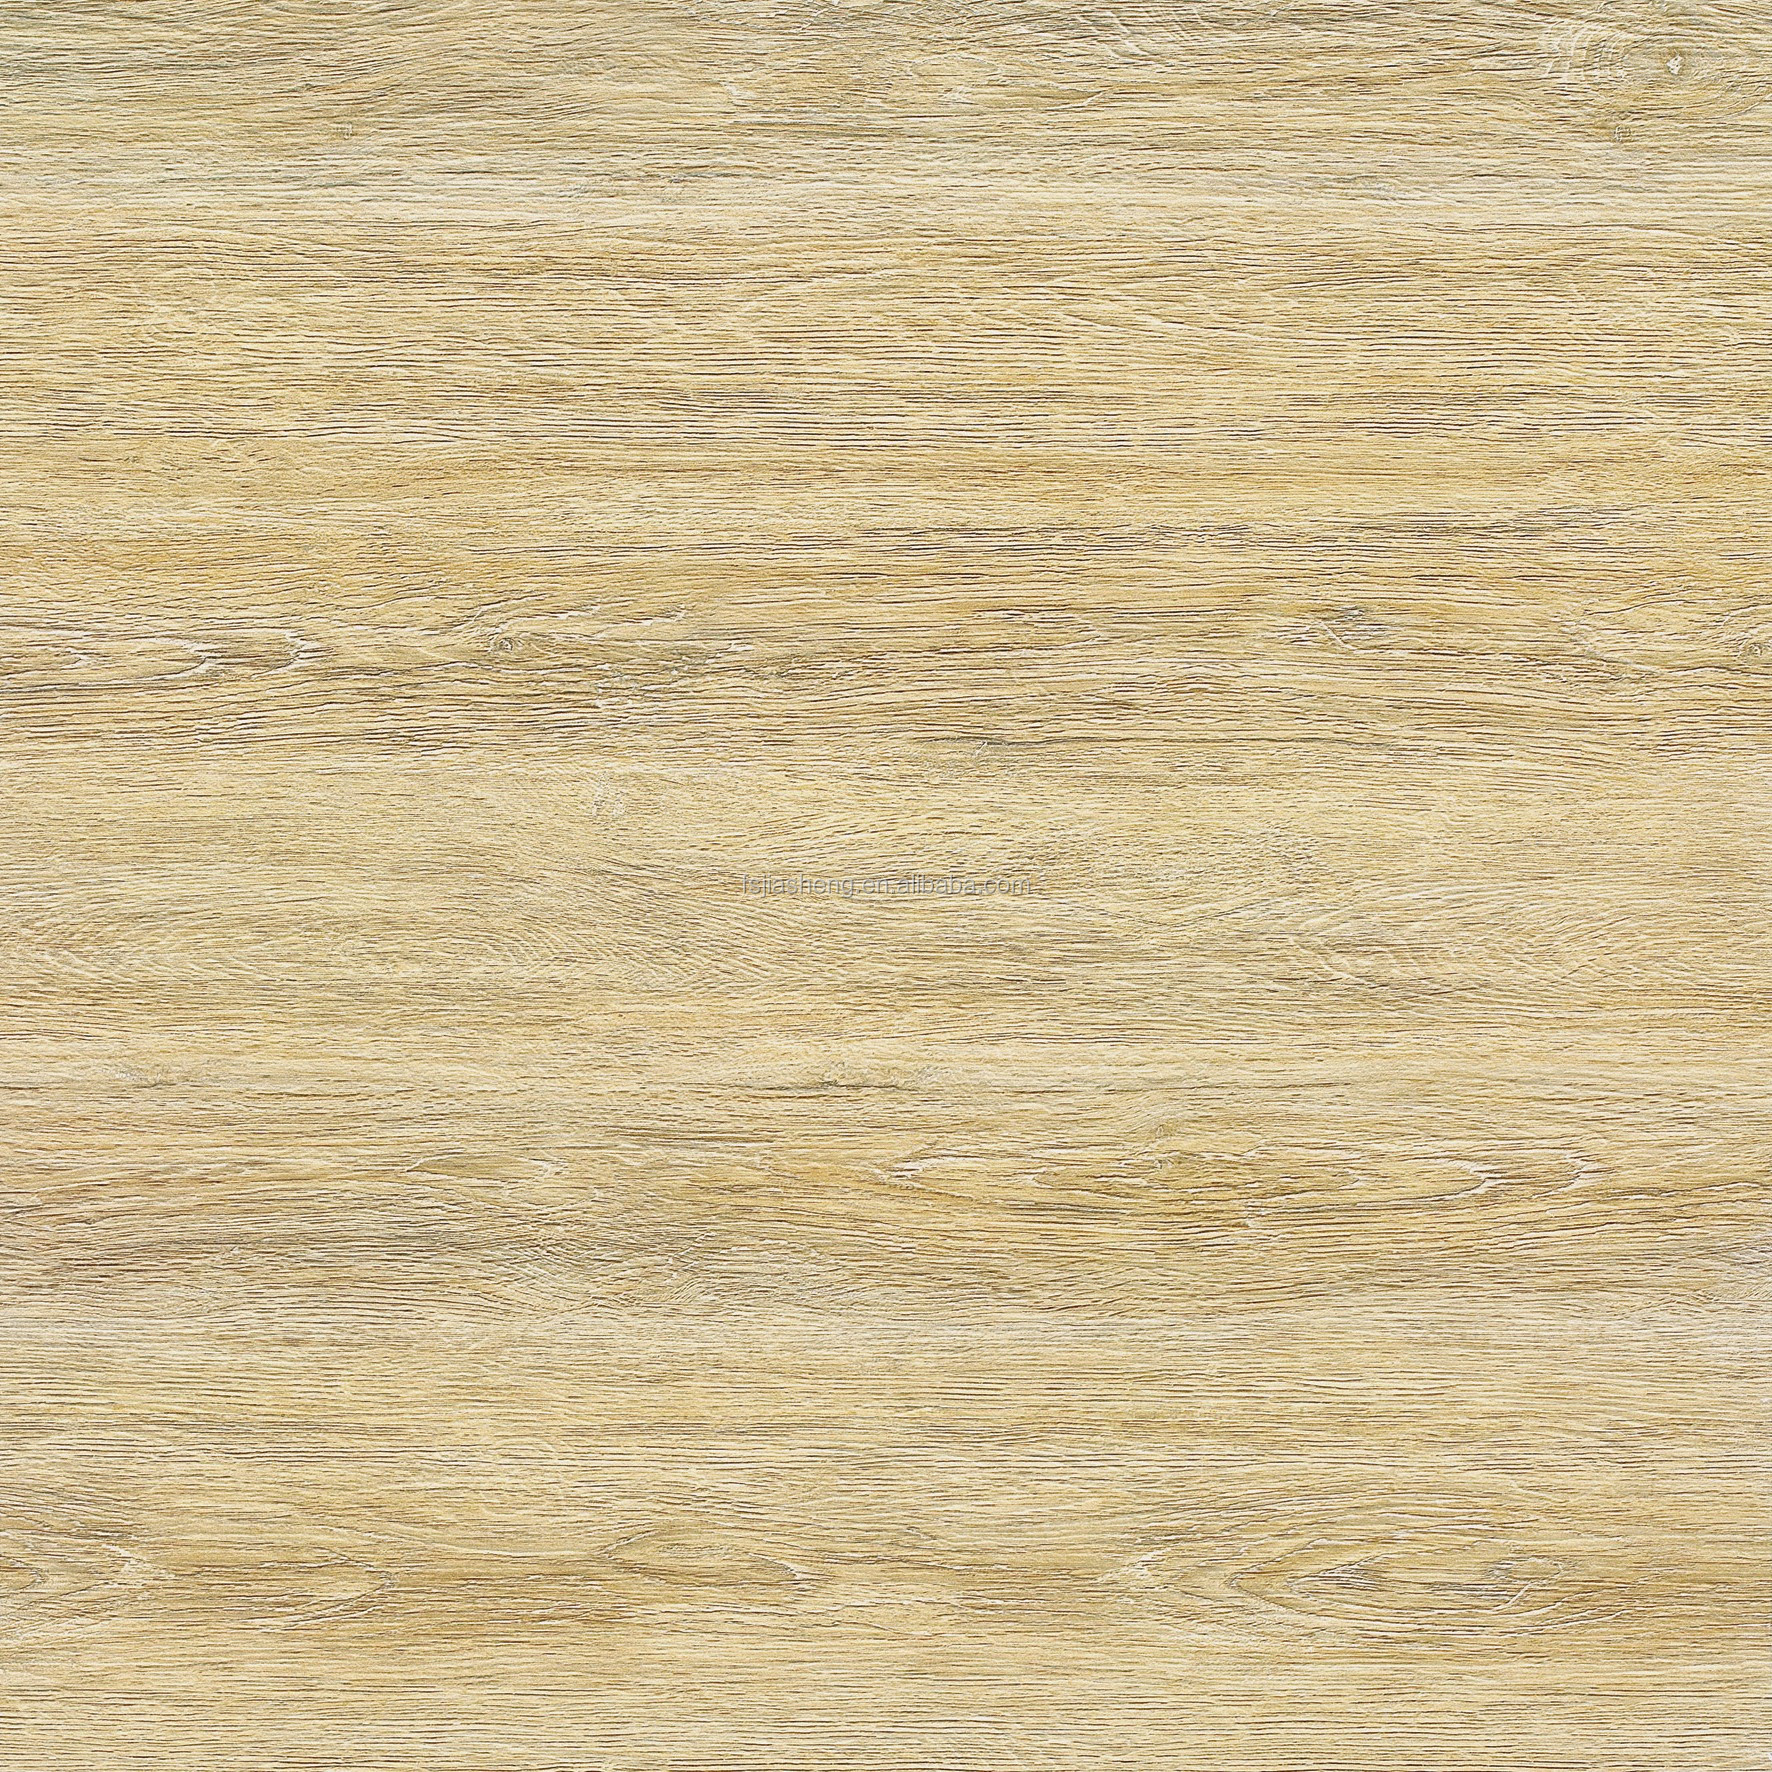 600*600, 600*900mm peach wooden finish effect ceramic tiles light Tans porcelain wood tile